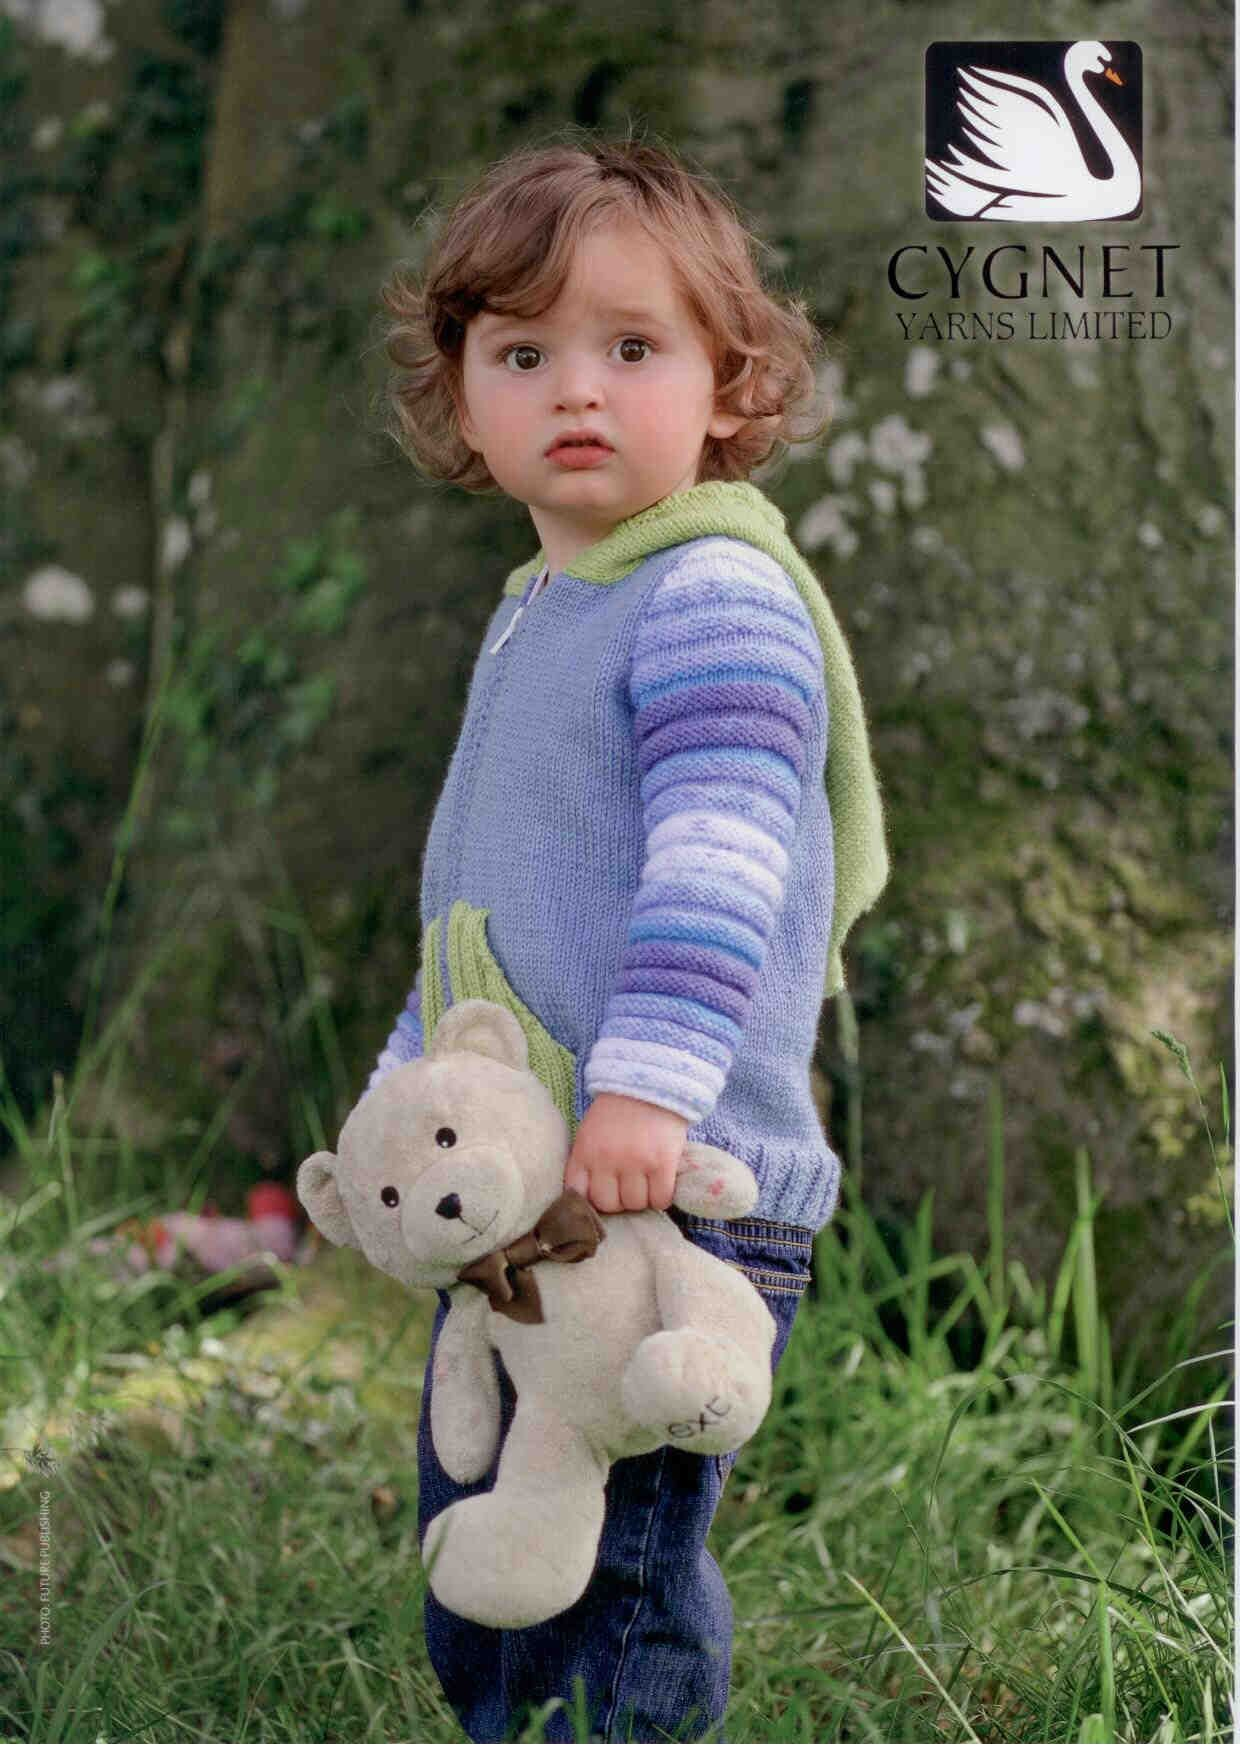 Cygnet yarns kiddies couture babes in the wood free knitting cygnet yarns kiddies couture babes in the wood free knitting pattern httpwww bankloansurffo Choice Image